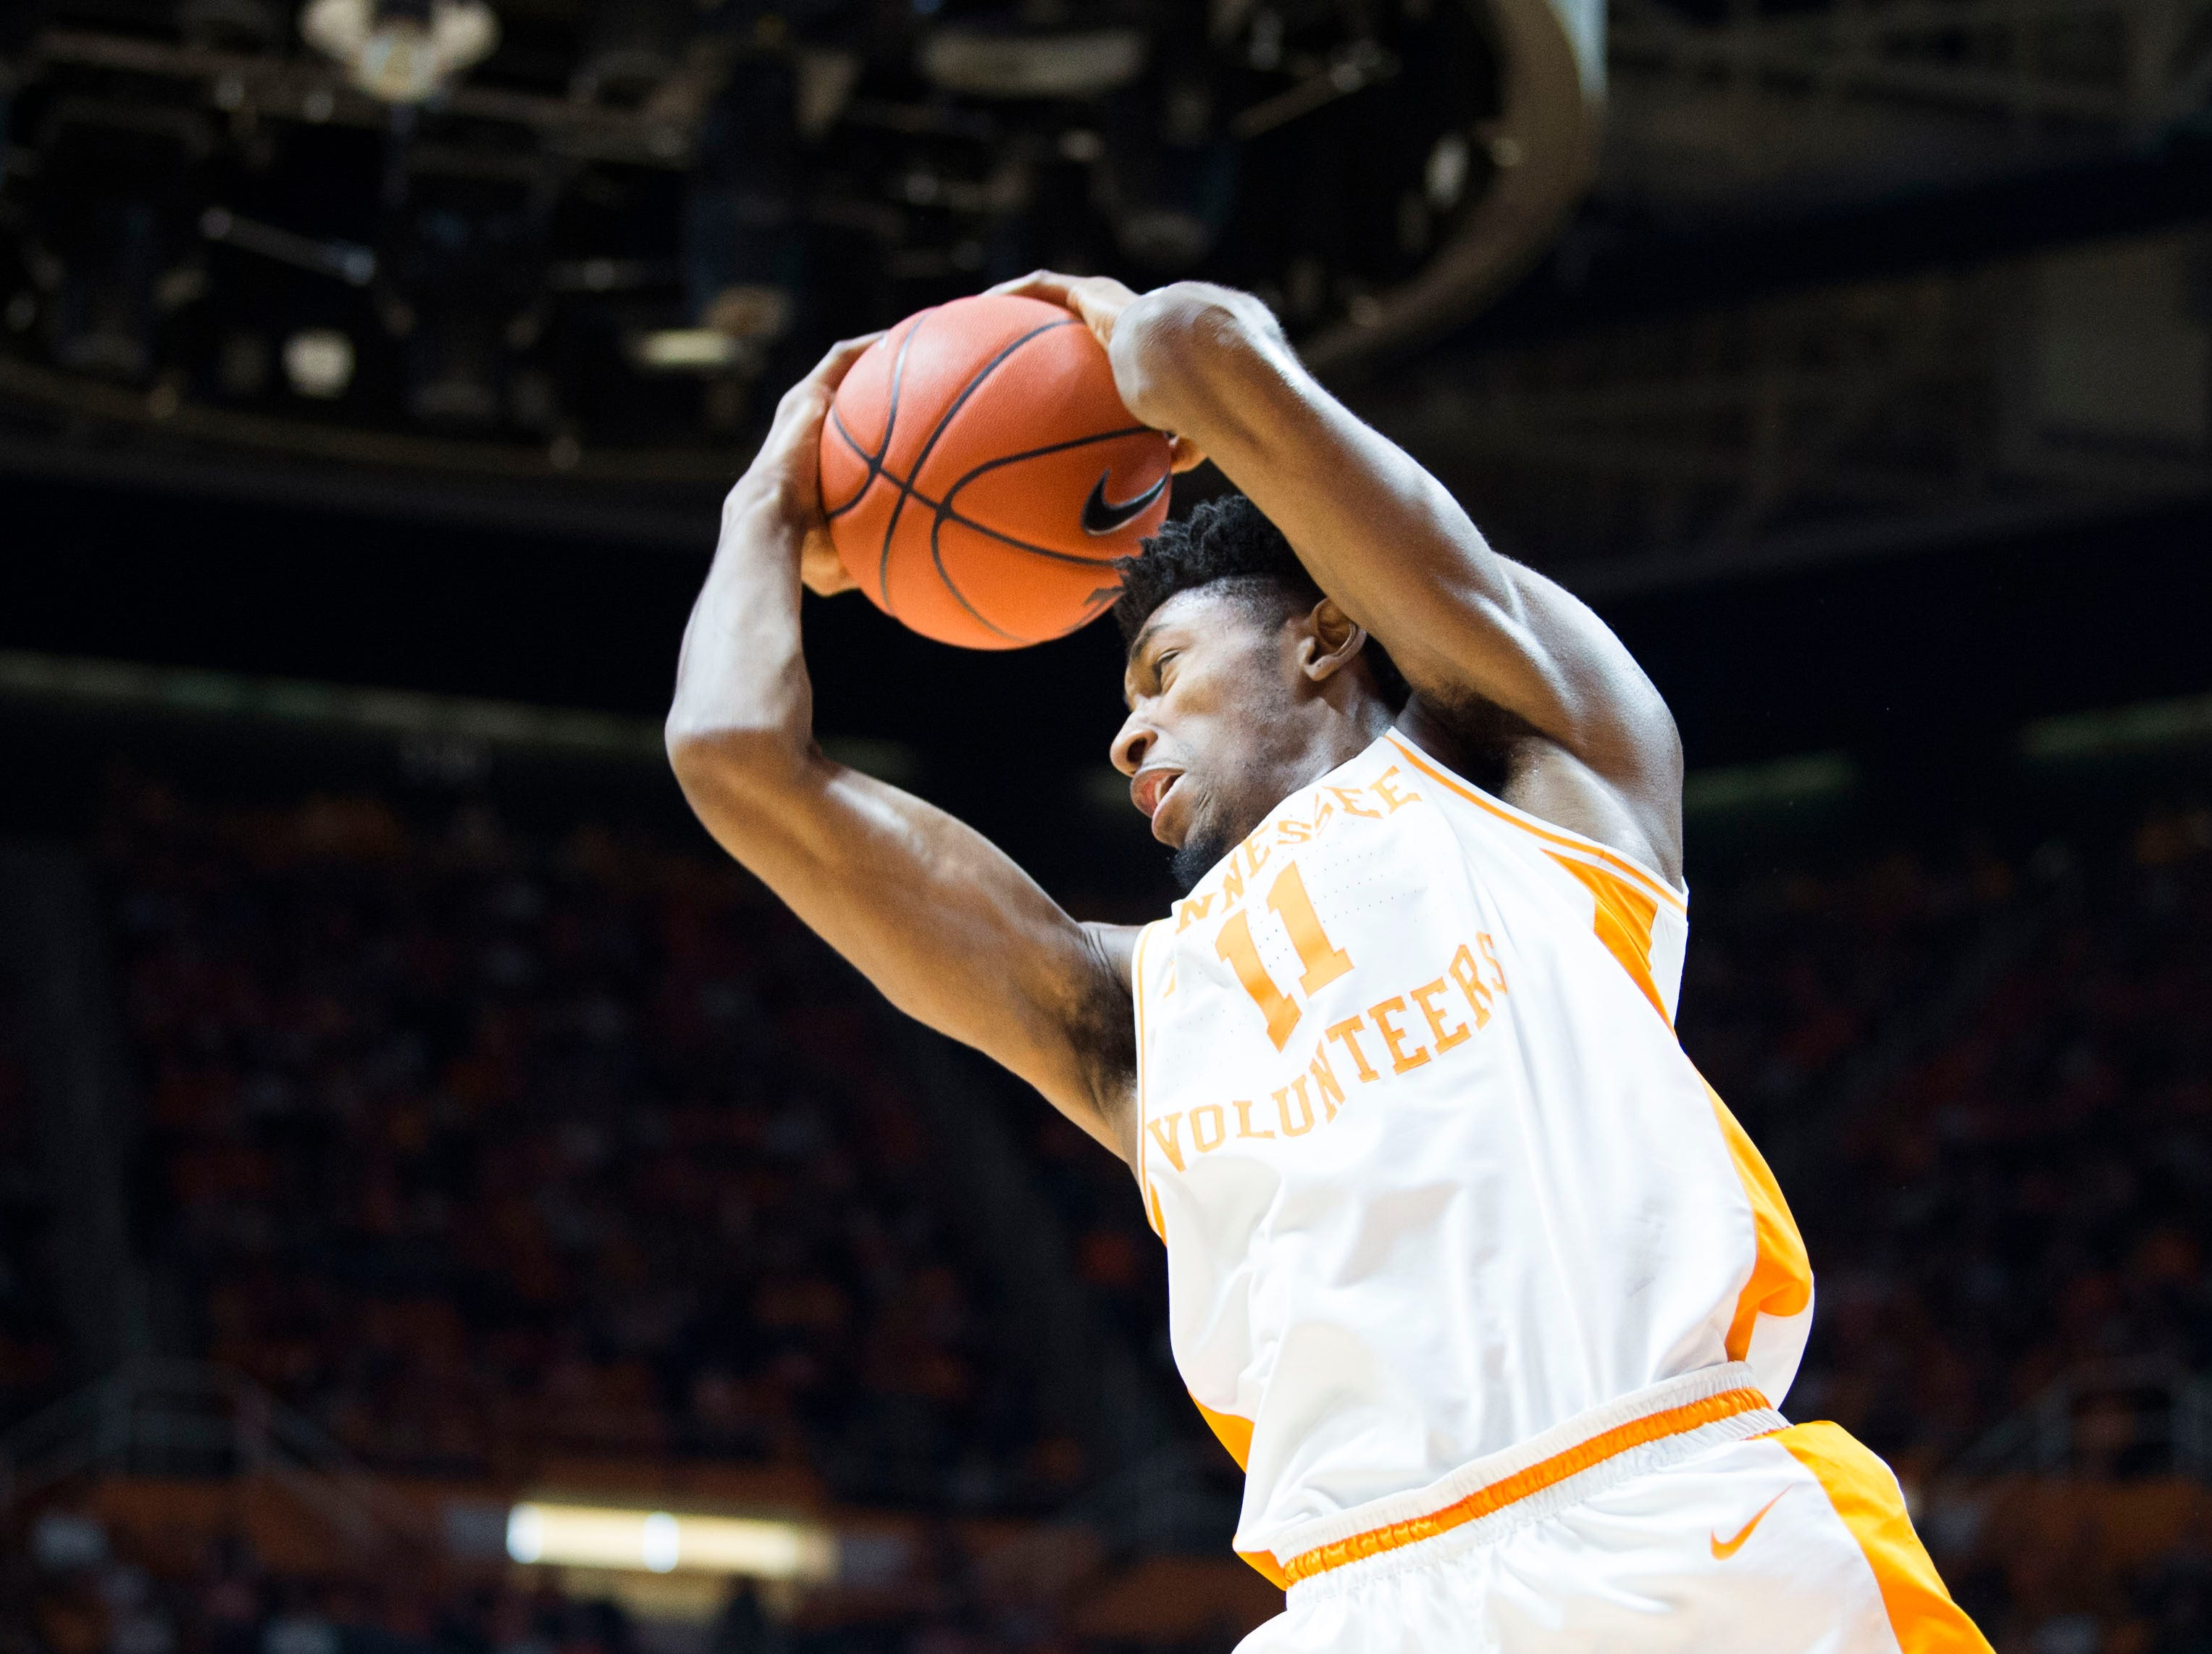 Tennessee's Kyle Alexander (11) grabs a rebound during a college basketball game between Tennessee and Georgia at Thompson-Boling Arena Saturday, Jan. 5, 2019.